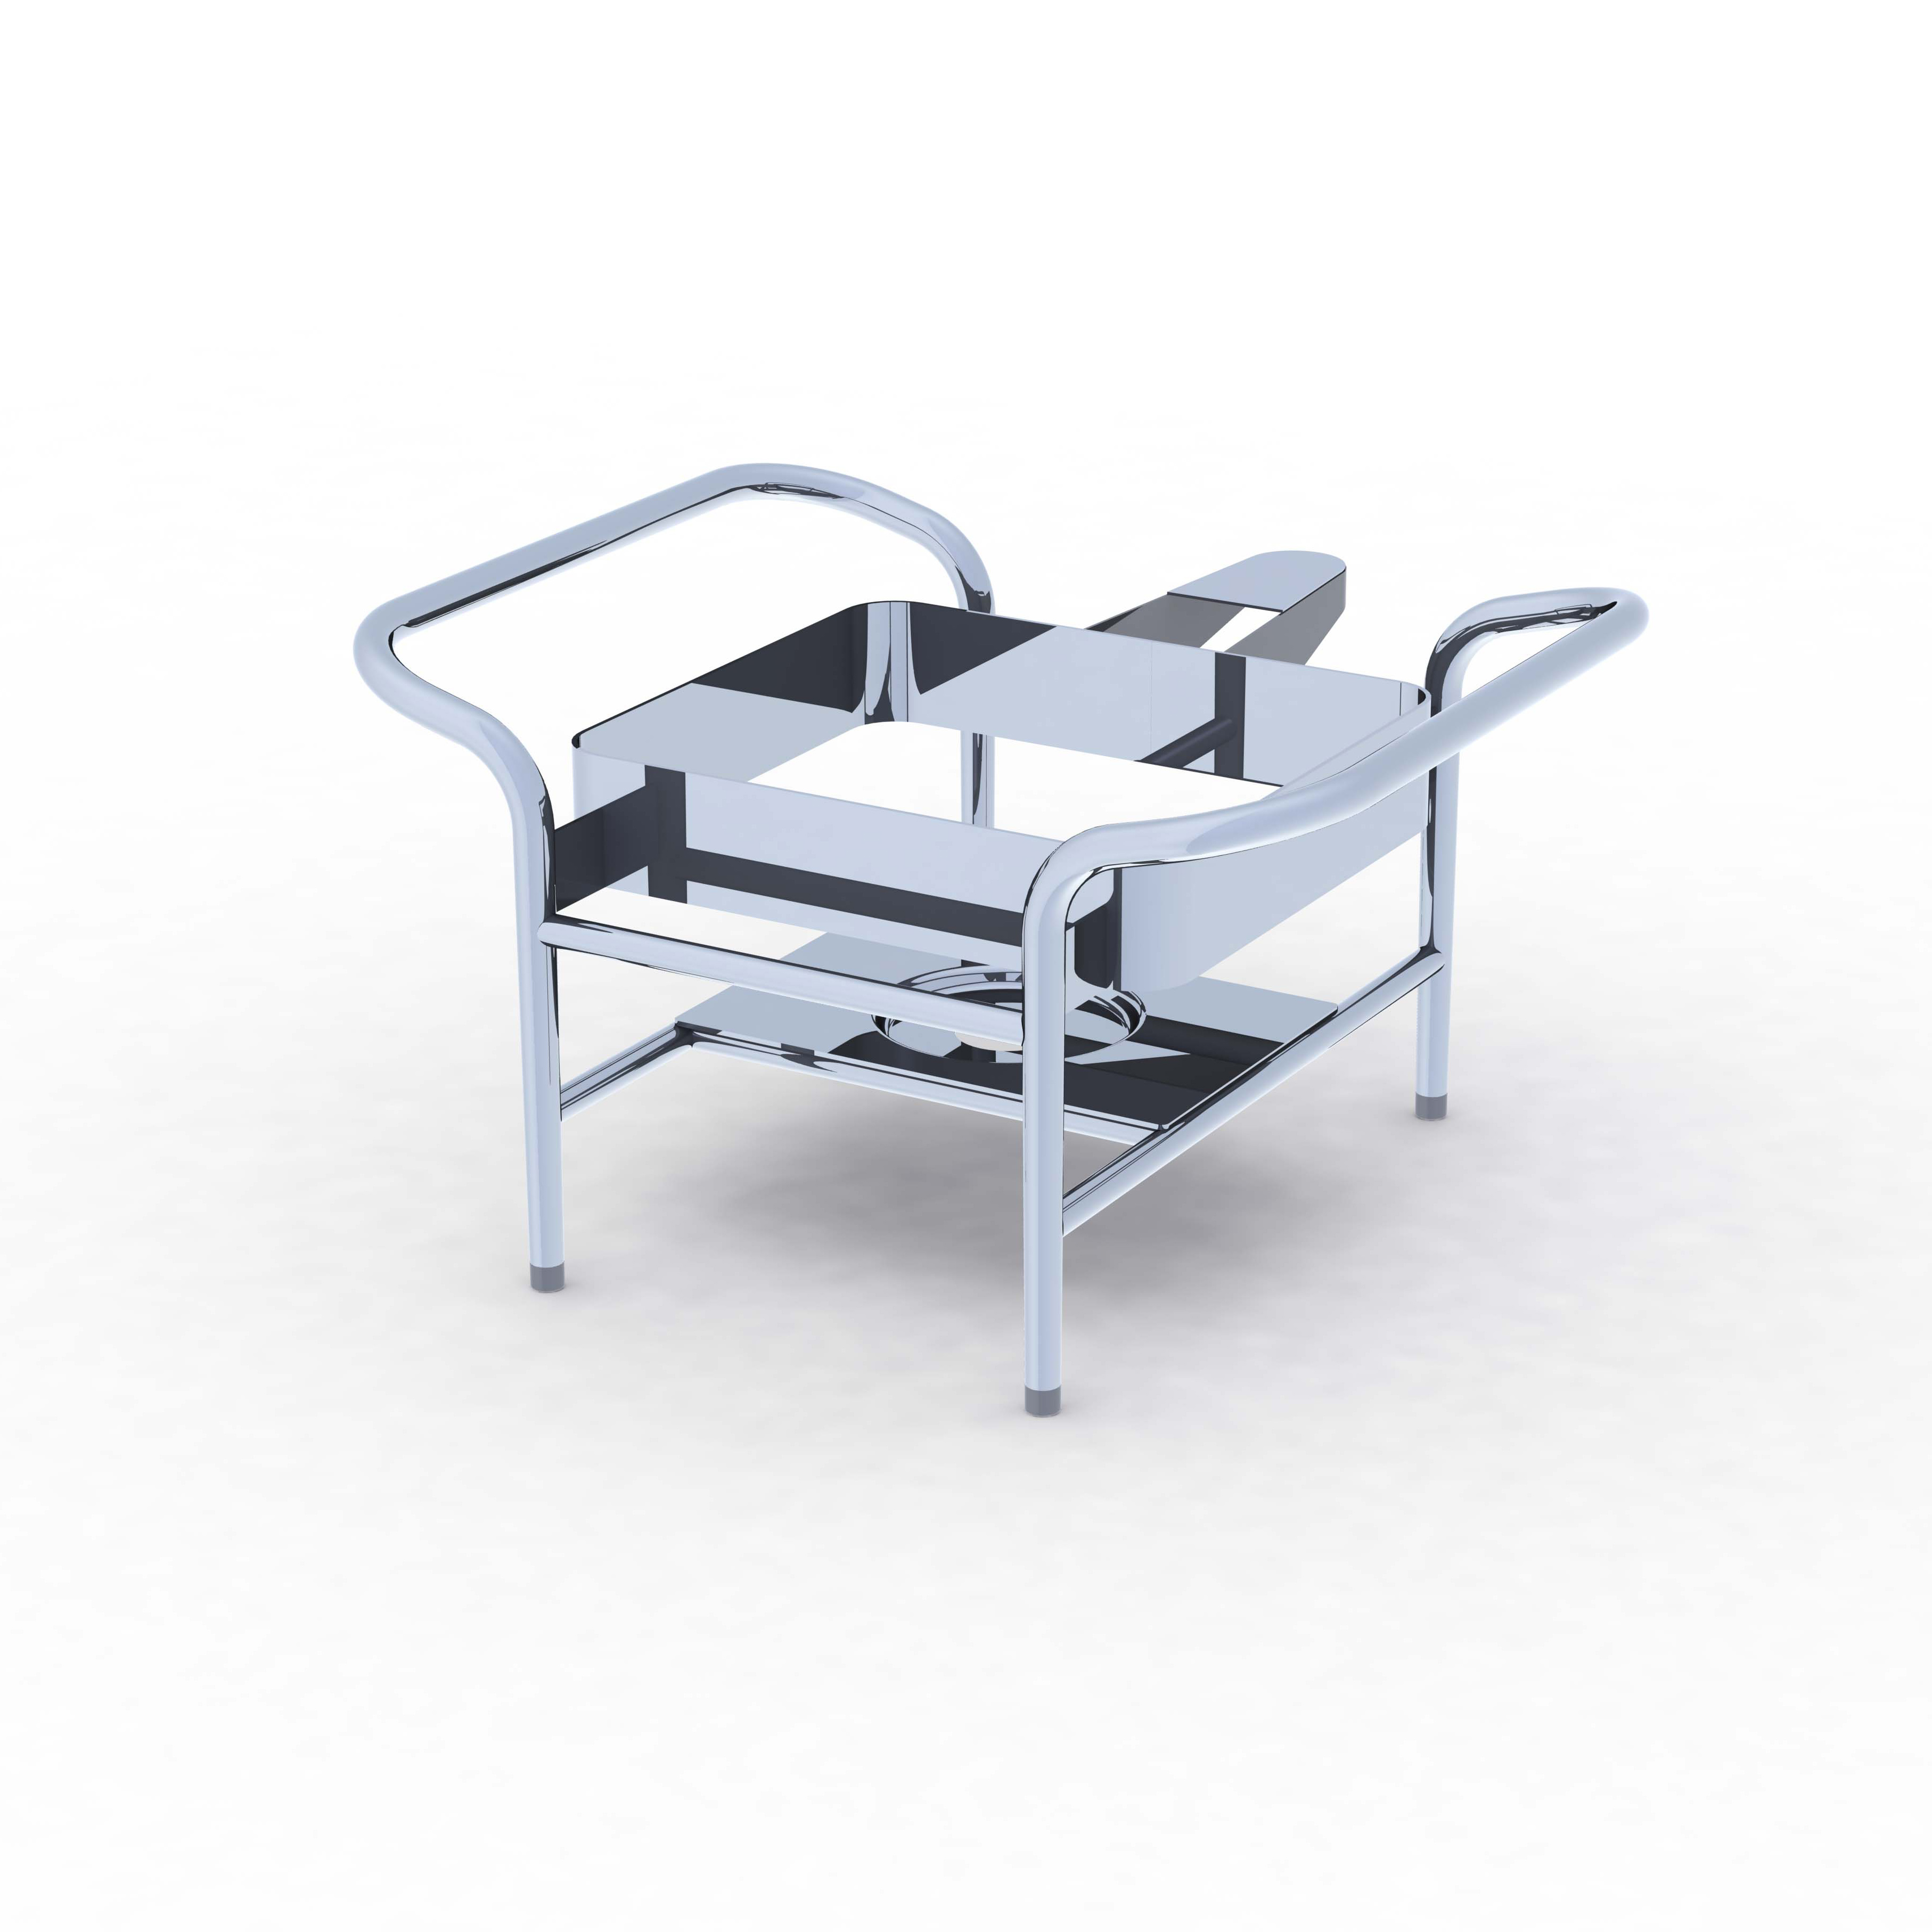 Vollrath 4644055 chafing dish frame / stand